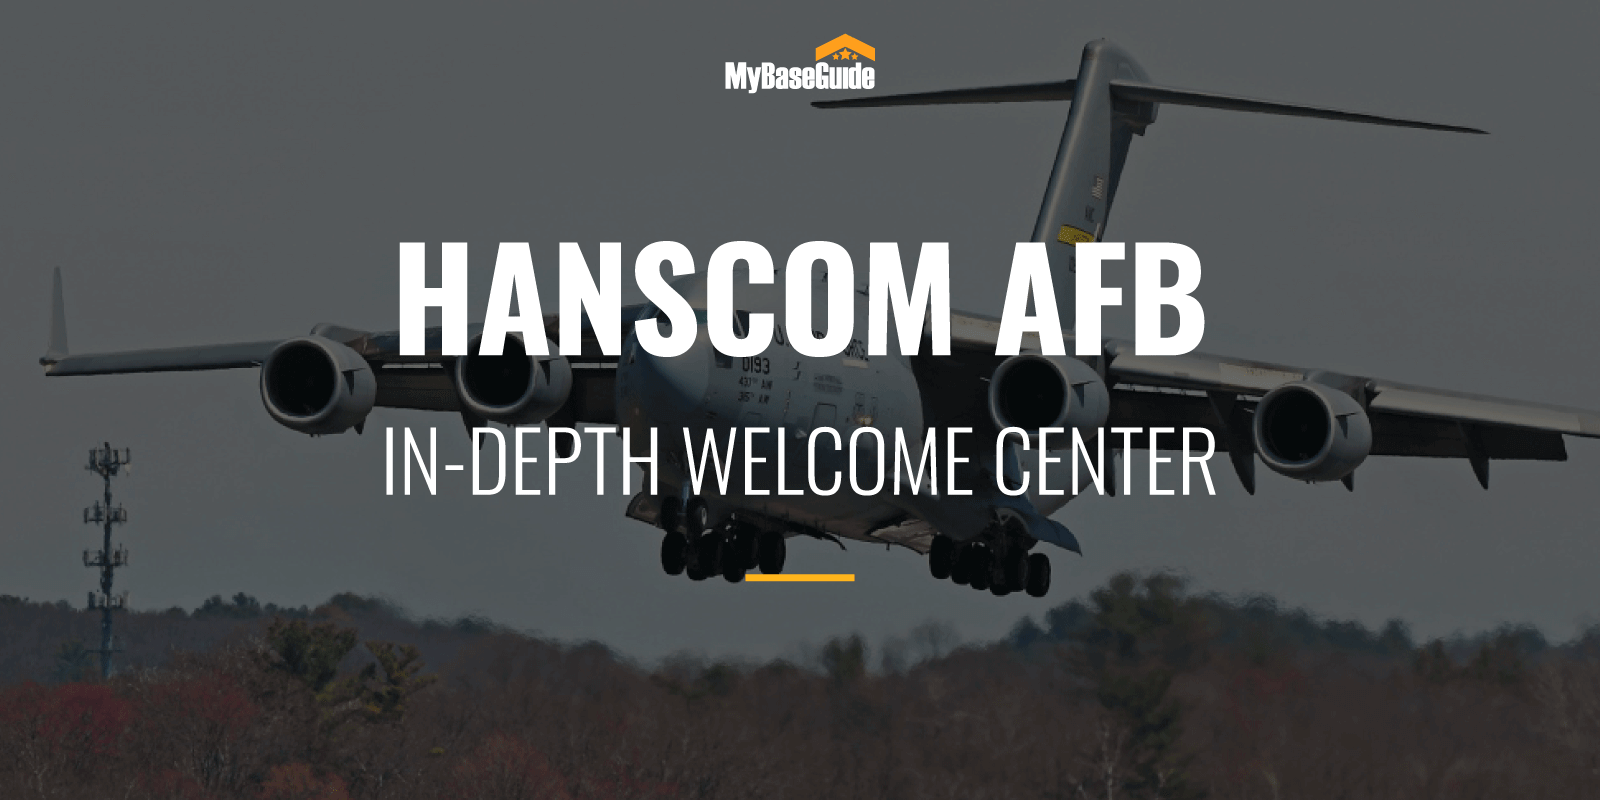 Hanscom AFB Welcome Center